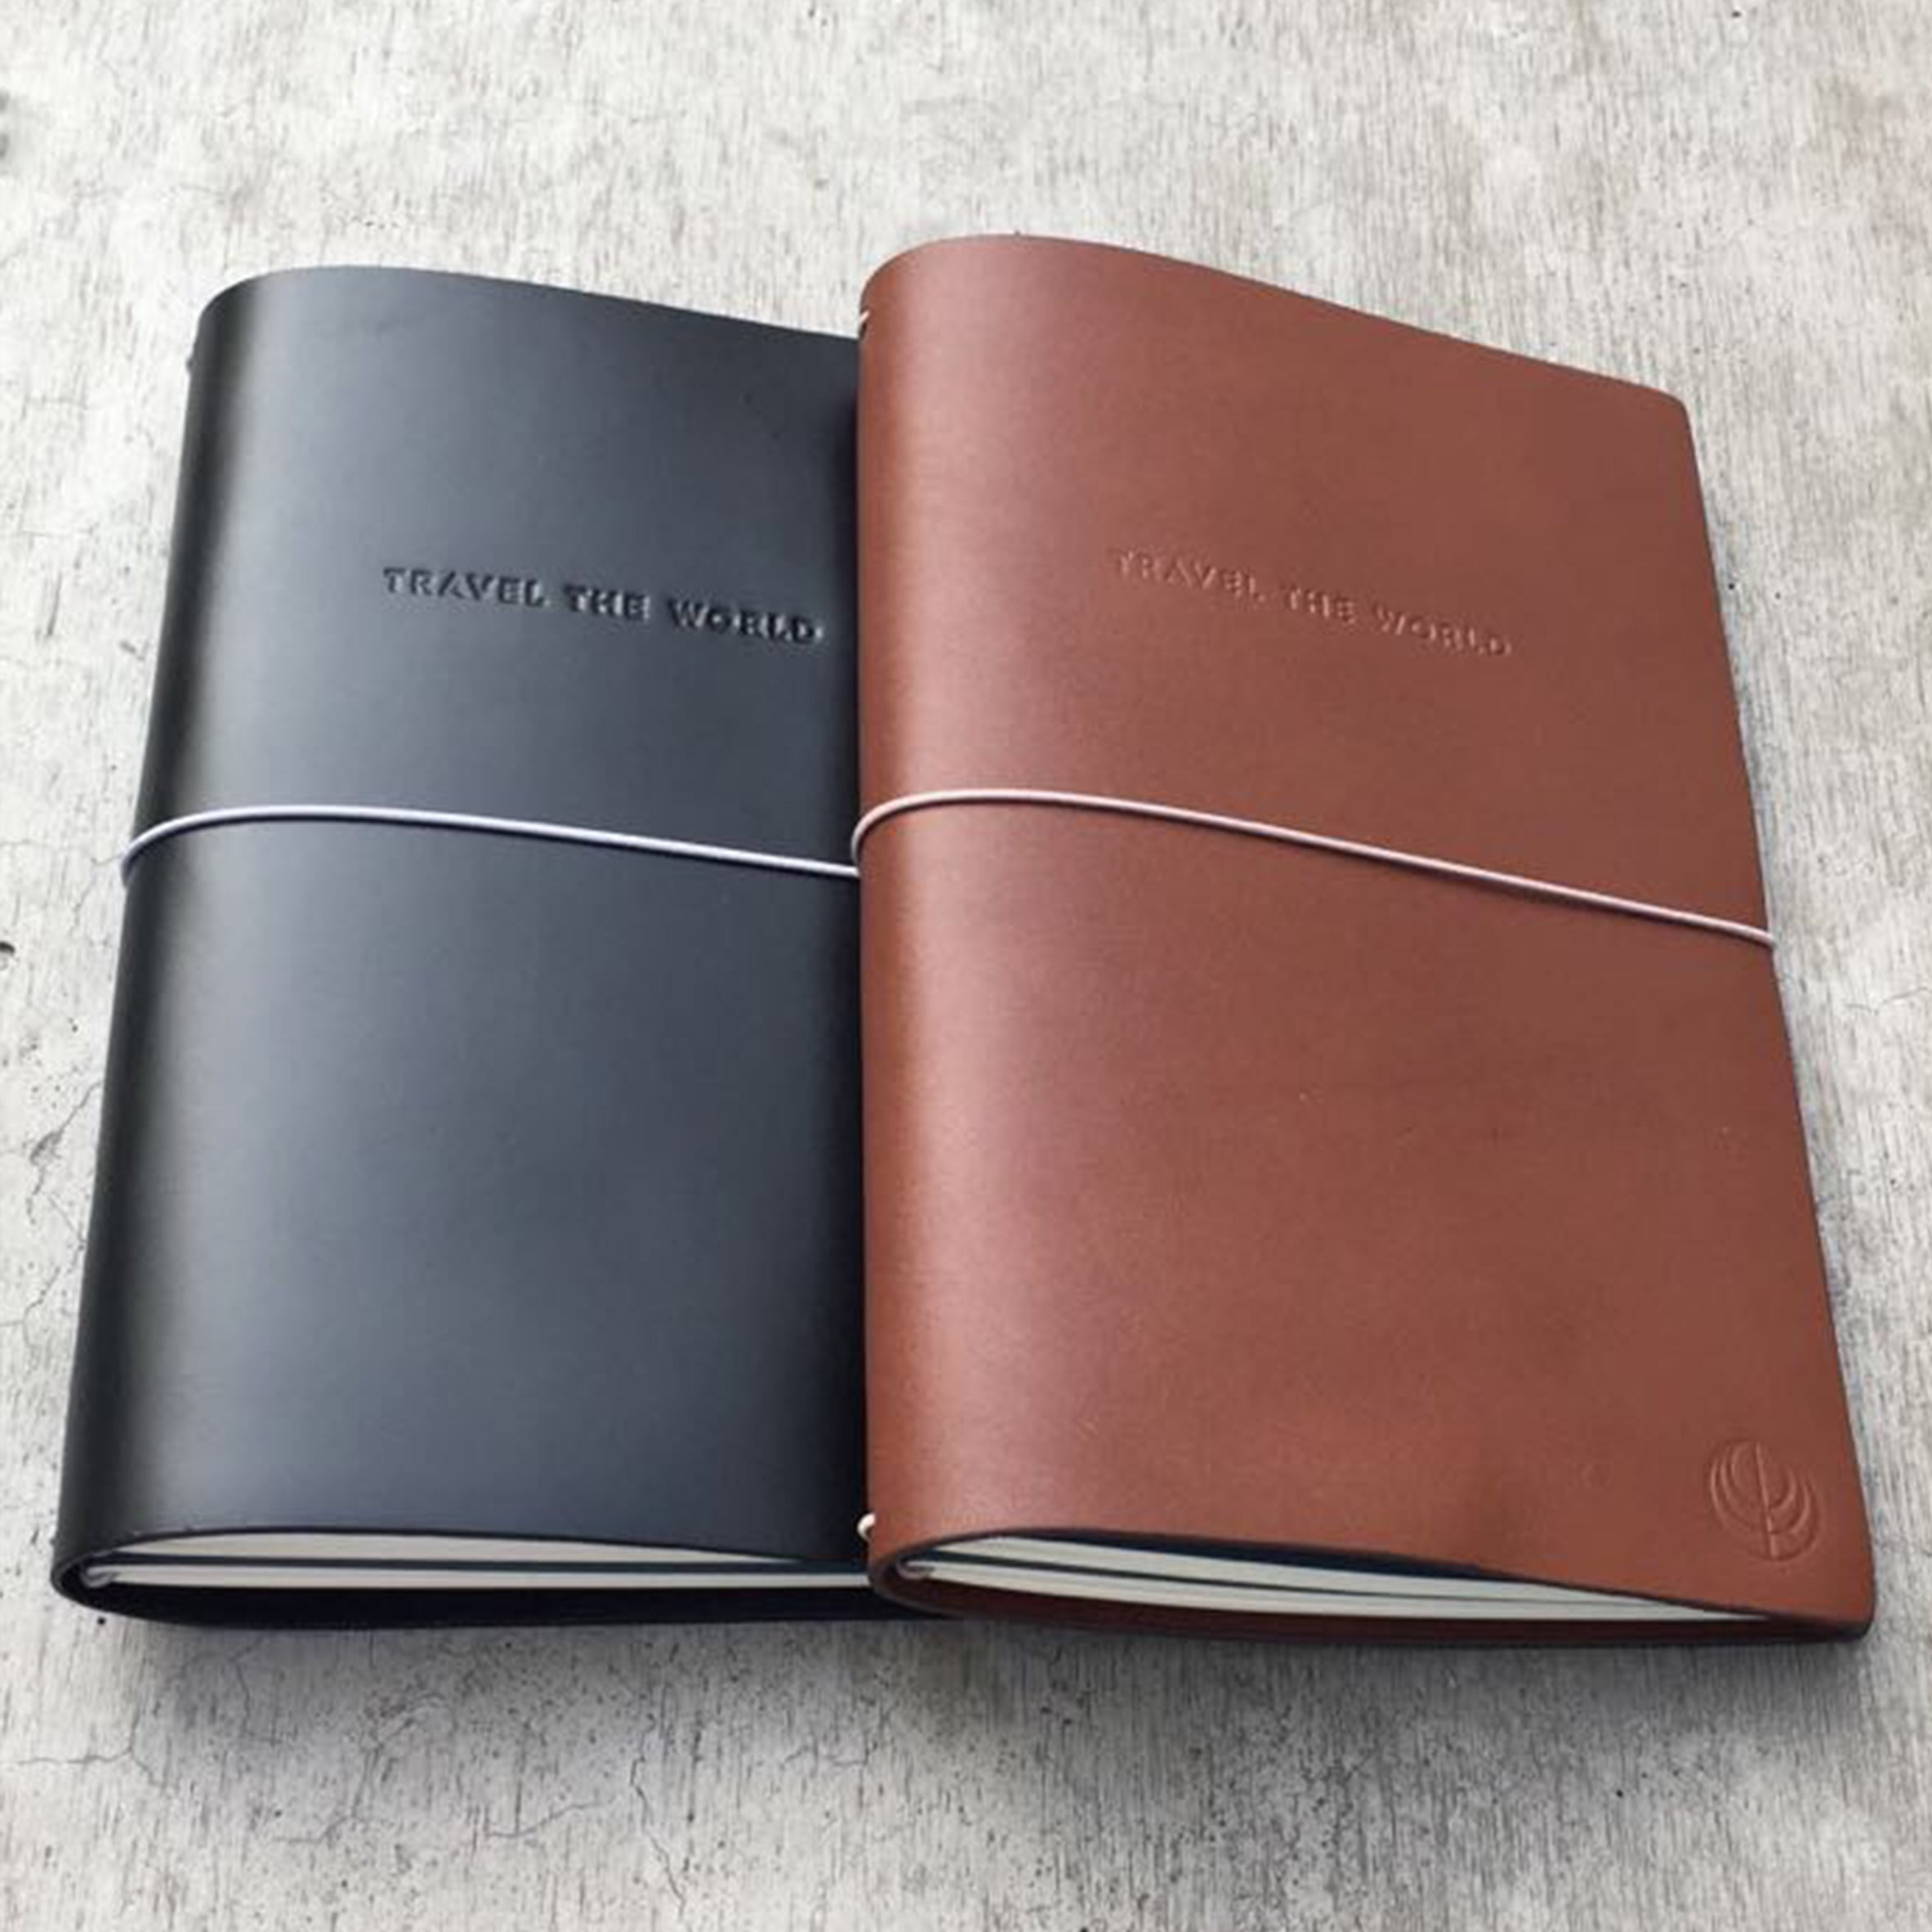 travel the world brown black leather notebooks cristina ramella travel the world fashion statement